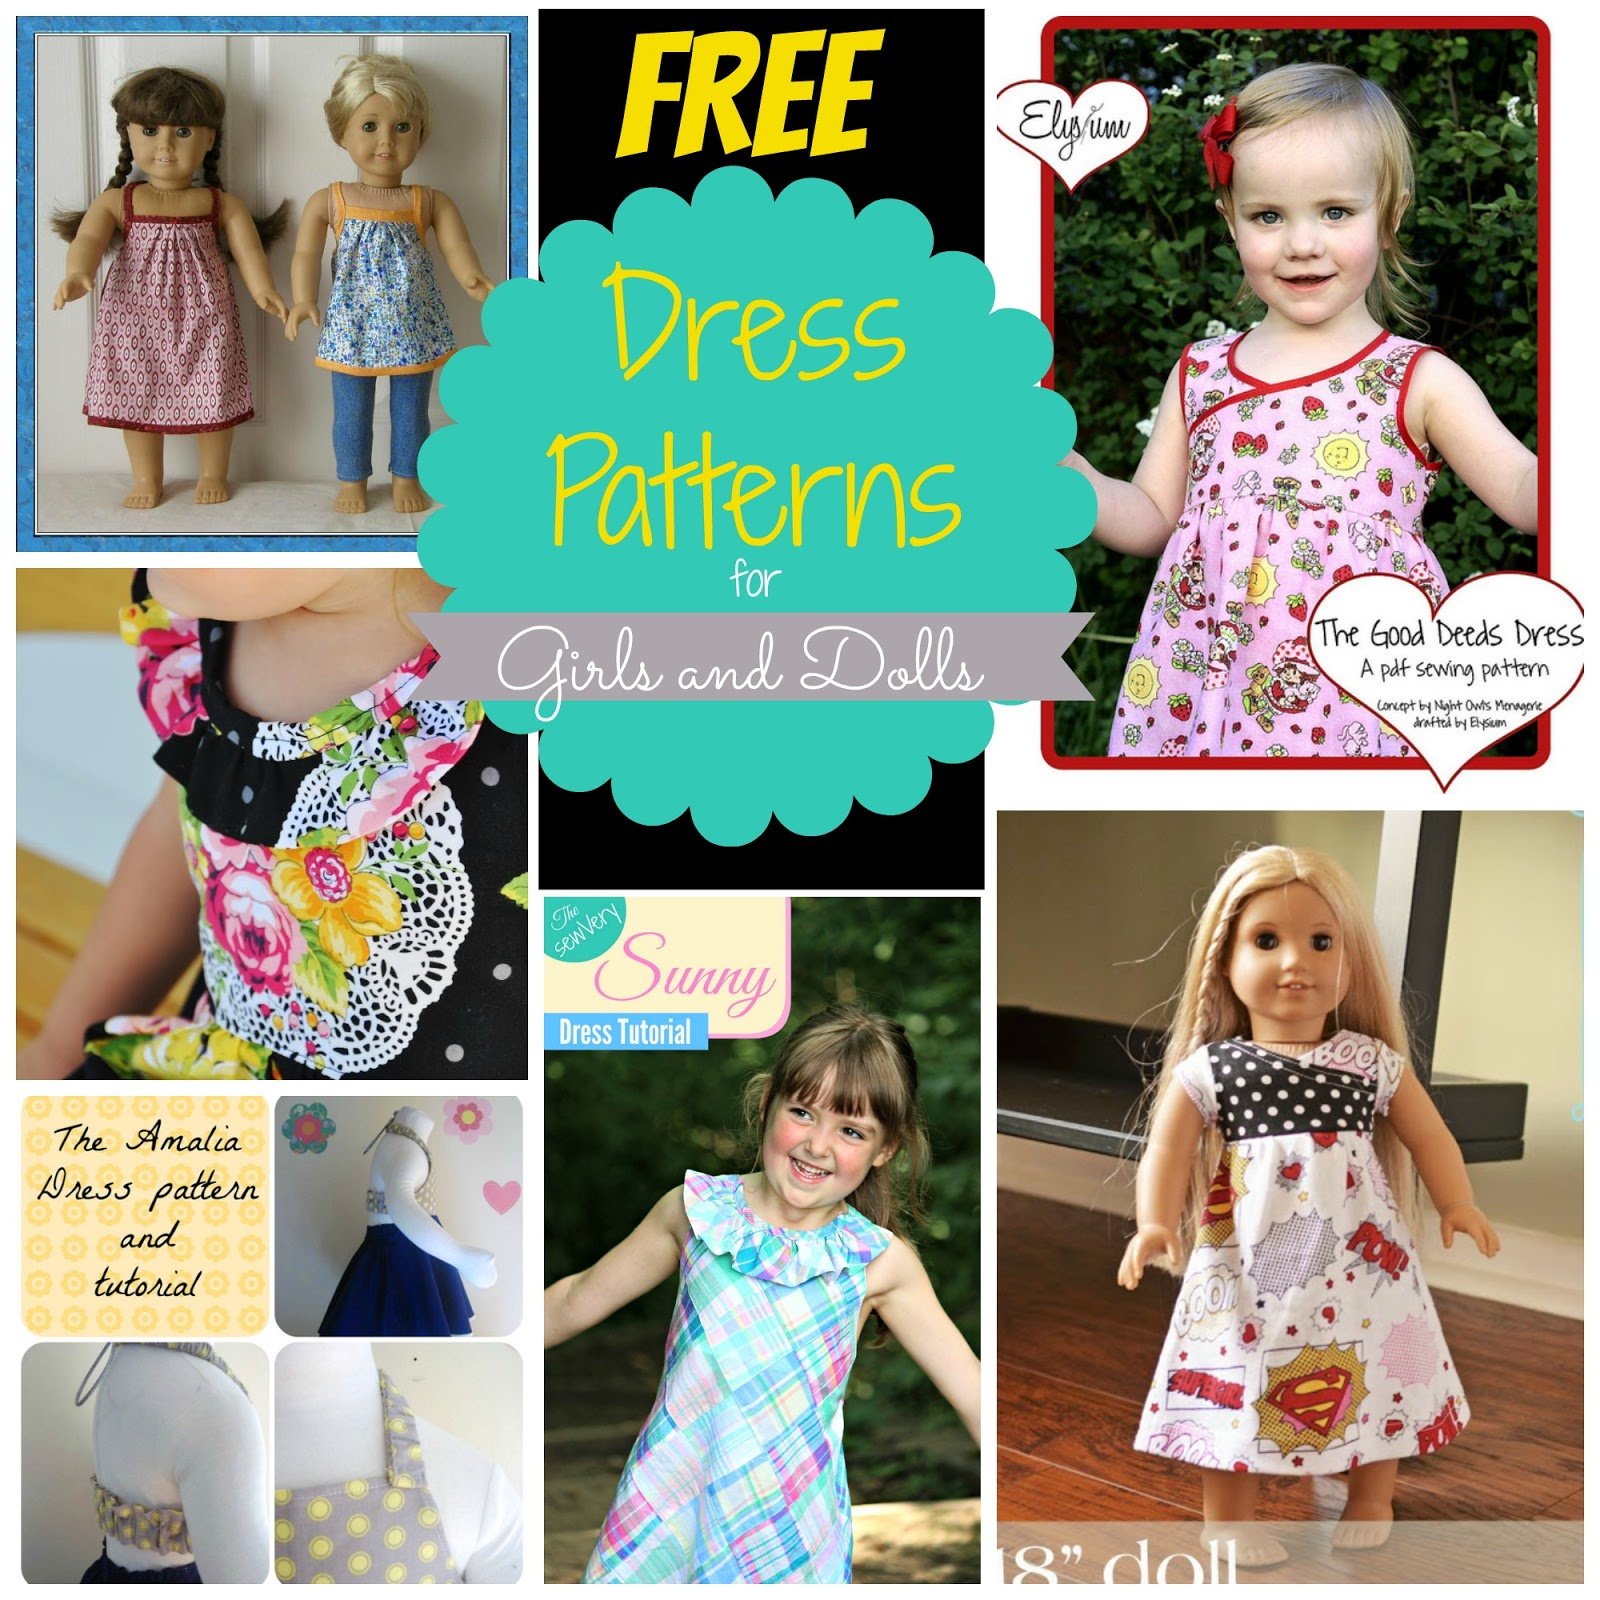 Tiny Dresses: FREE Summer Dress Patterns for Girls and Dolls